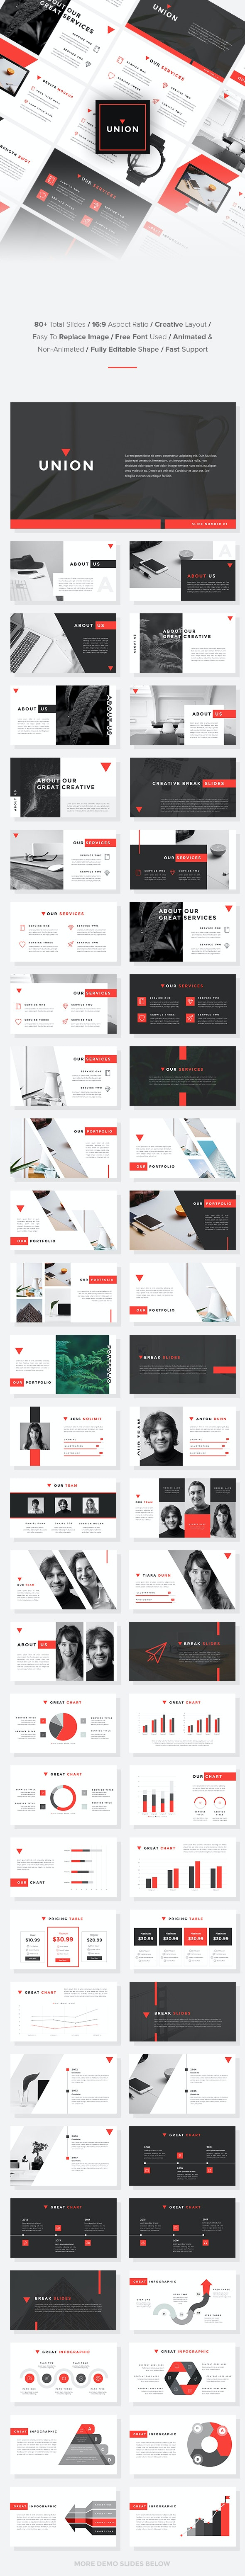 Union - StartUp Pitch Deck Keynote Template - Keynote Templates Presentation Templates